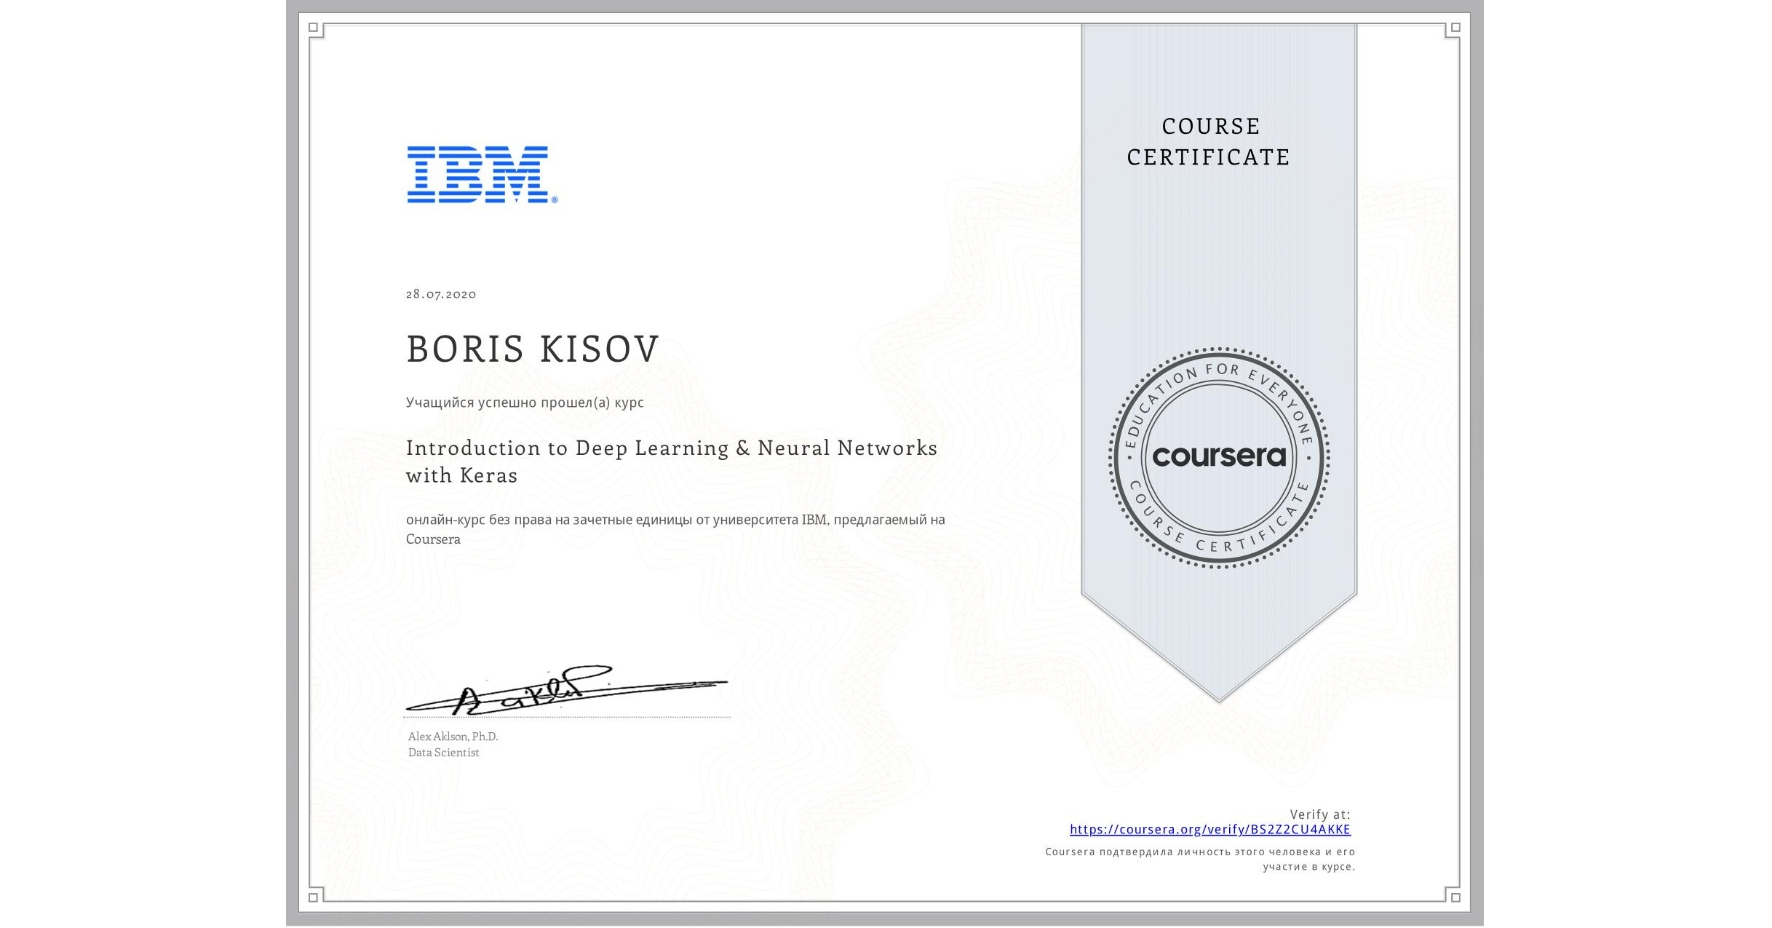 View certificate for BORIS KISOV, Introduction to Deep Learning & Neural Networks with Keras, an online non-credit course authorized by IBM and offered through Coursera